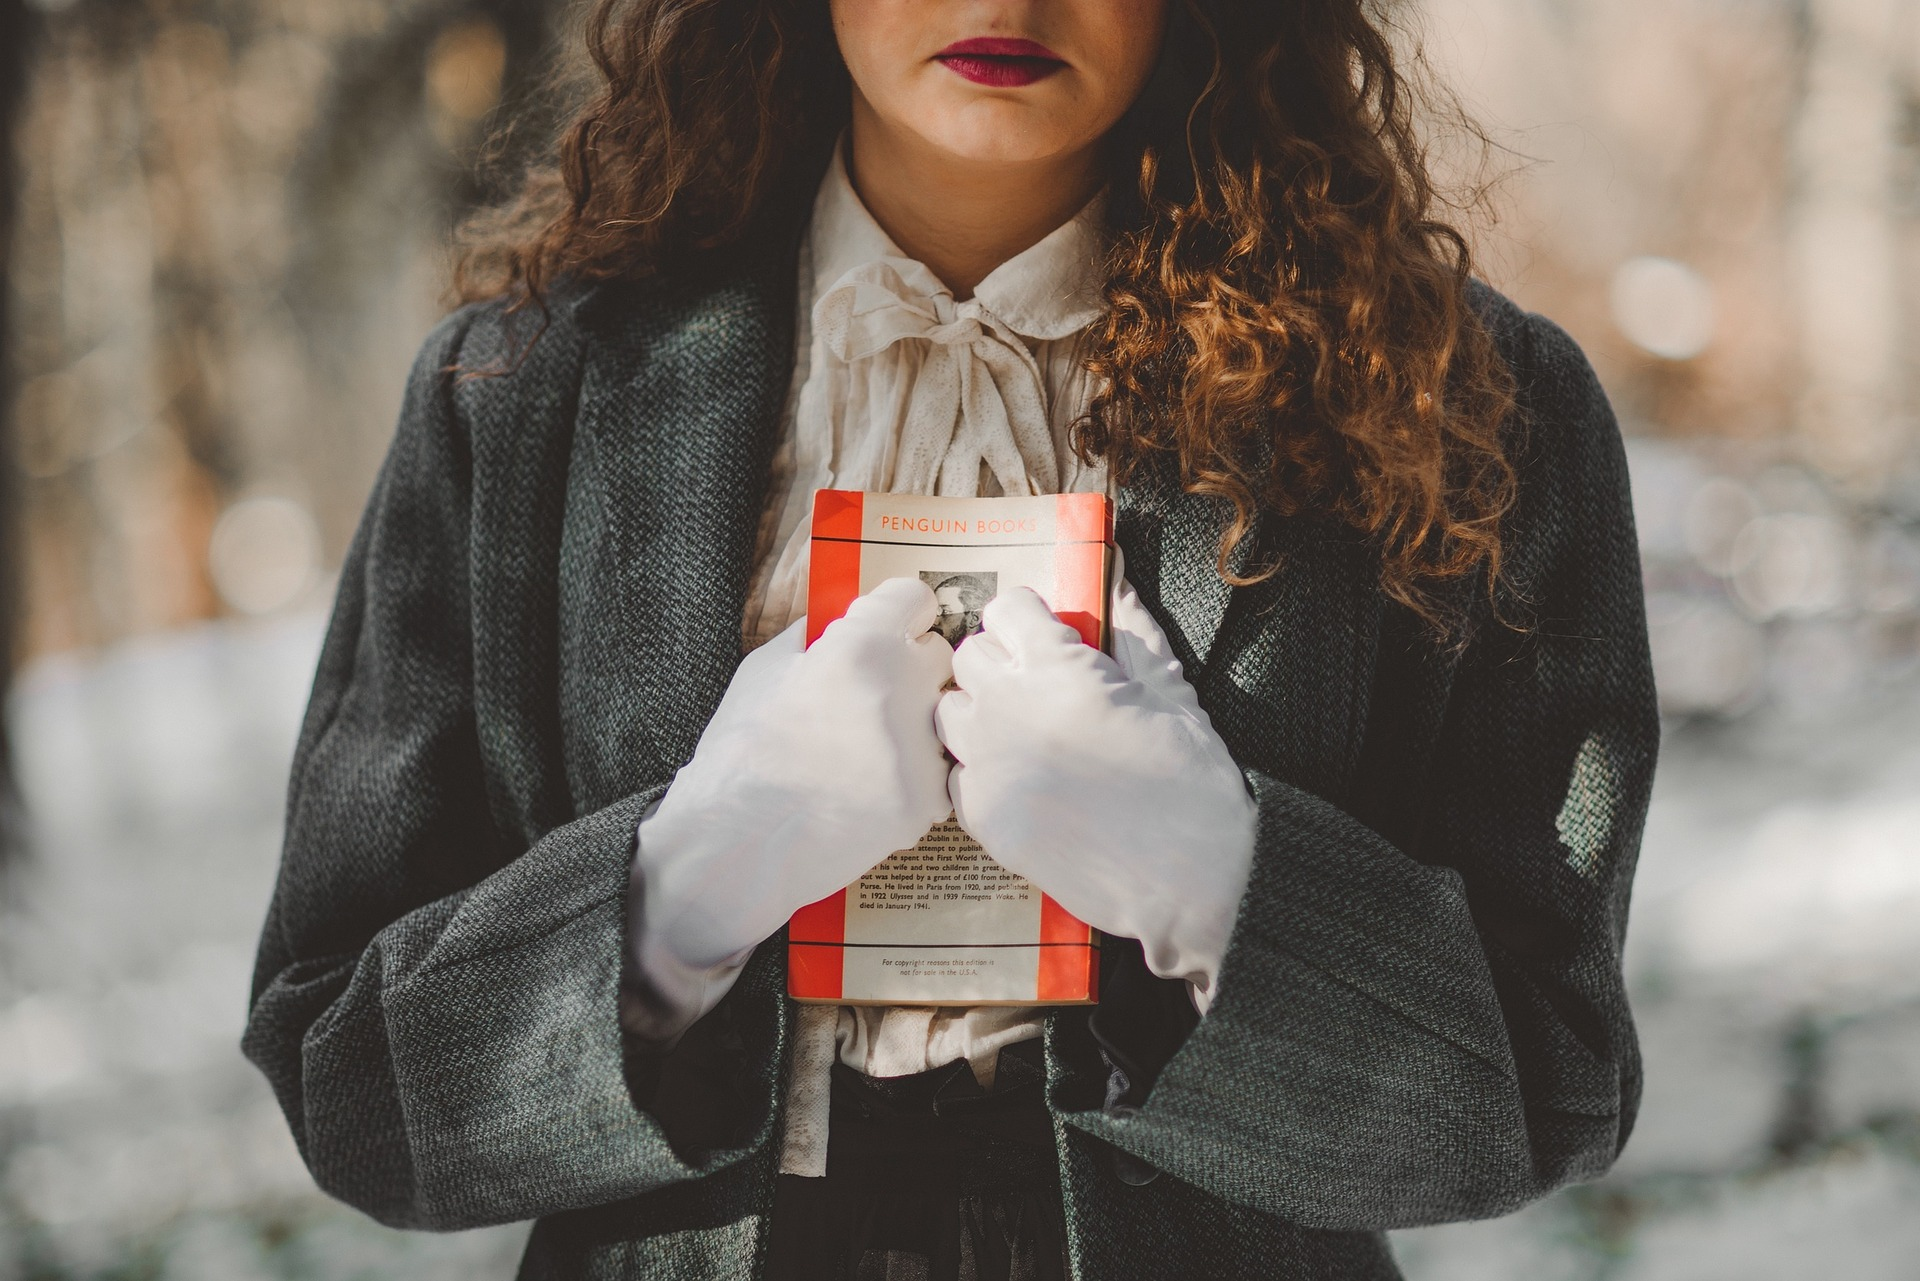 In an article about whether to finish a book you hate reading, an image of a woman clutching a book